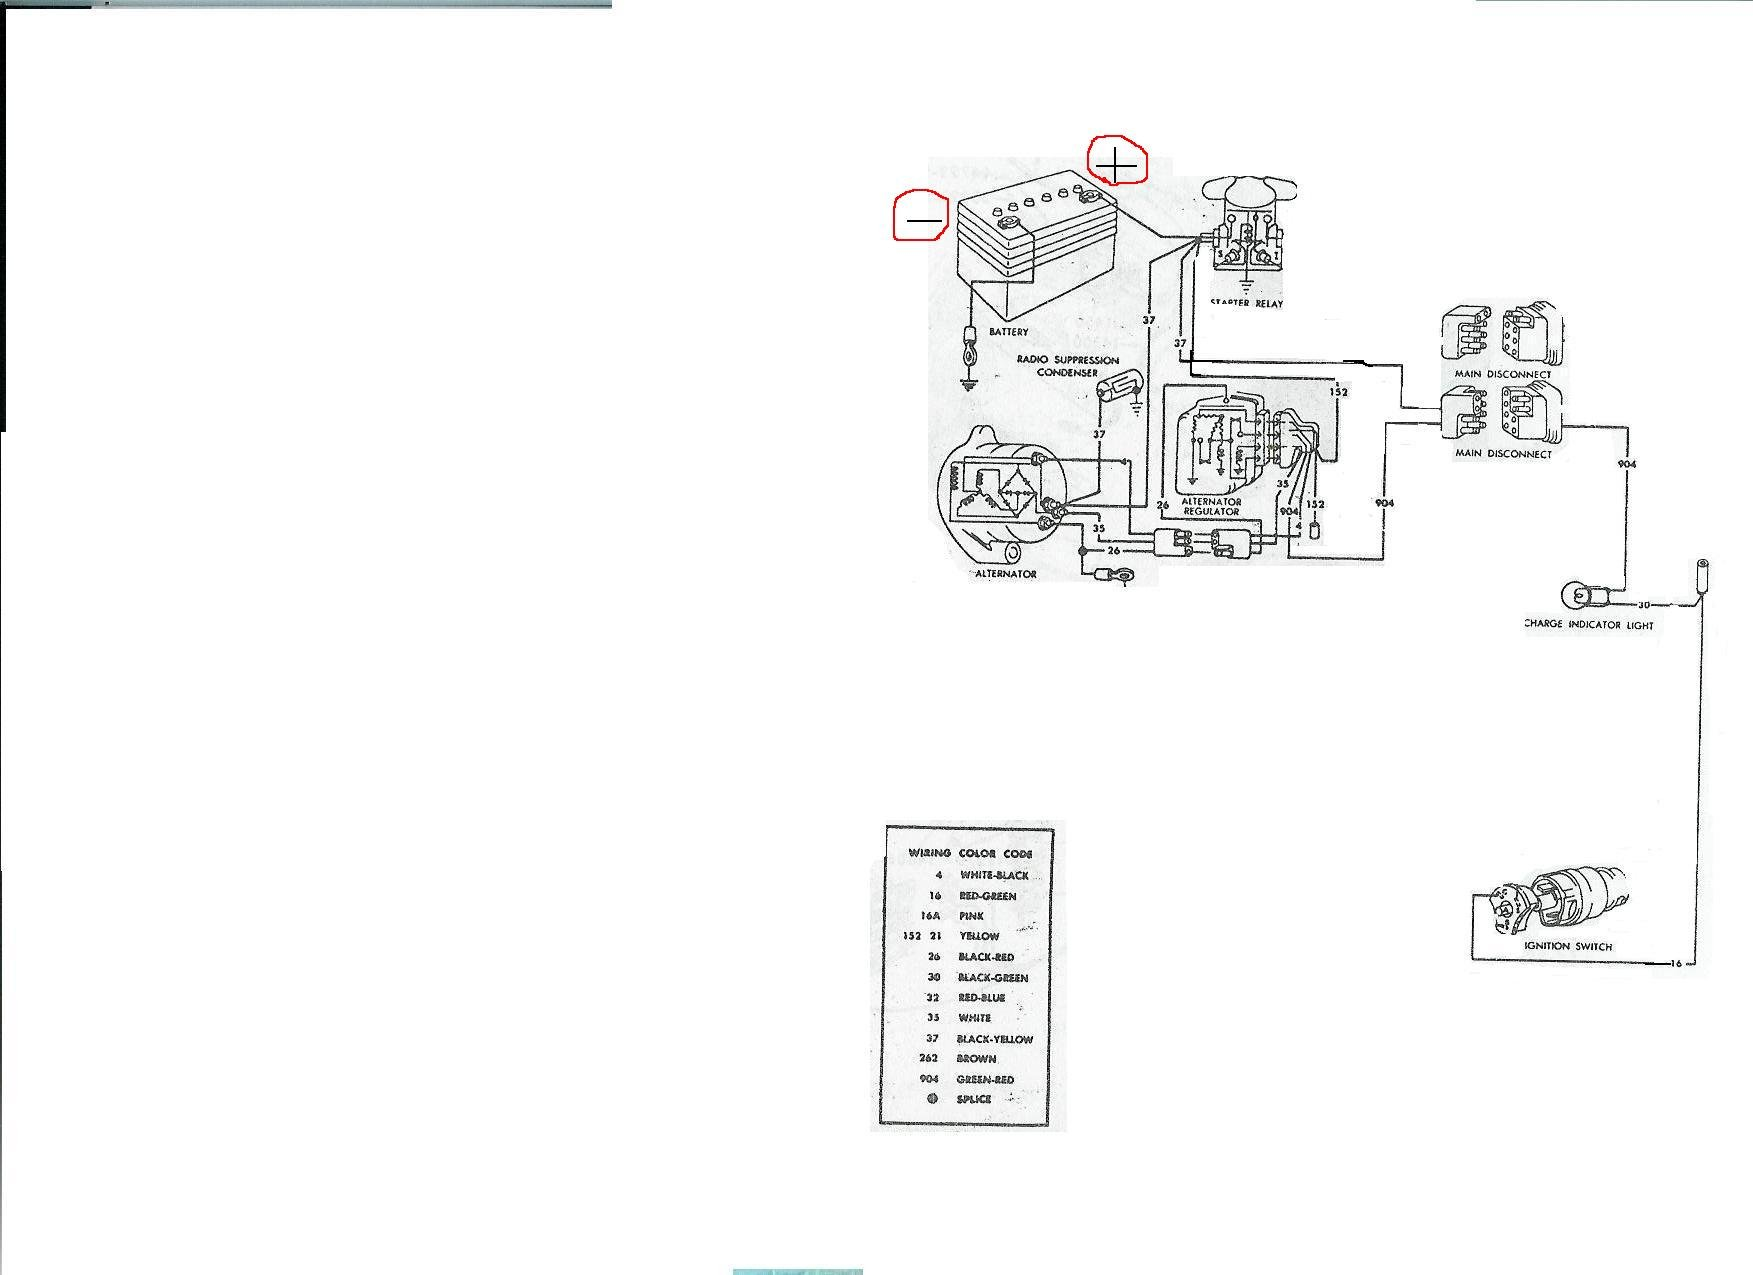 1965 mustang alternator wiring diagram 1965 image 65 mustang 289 alternator wiring diagram 65 auto wiring diagram on 1965 mustang alternator wiring diagram